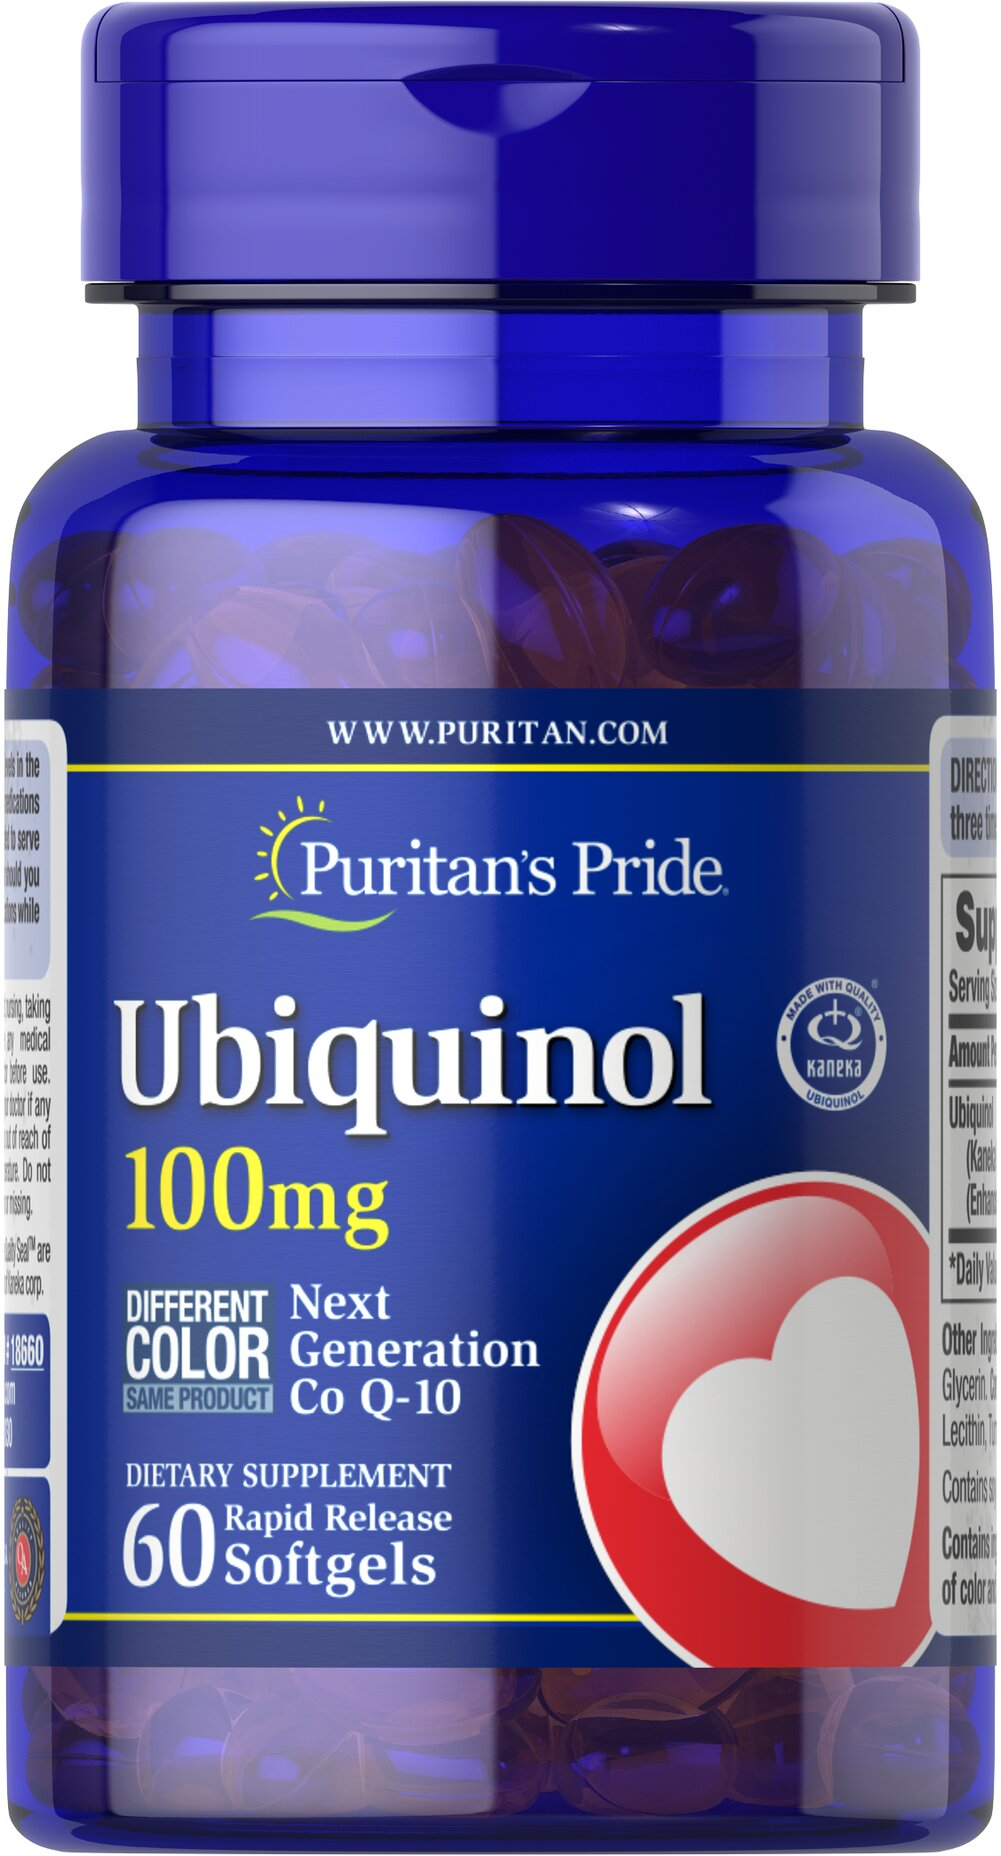 Ubiquinol 100 mg <p>Advanced, active form of Co Q-10</p>  <p>Promotes a healthy heart and cardiovascular system.**</p><p>Exceptional antioxidant properties.**</p>  <p>Ordinary Co Q-10 supplements must be converted in the body to Ubiquinol to provide benefits…so by supplementing with Ubiquinol, you're saving your body a step and reaping healthful benefits right away!**</p> <p>Studies indicate that Co Q-10 levels may decline as we age.</p&gt